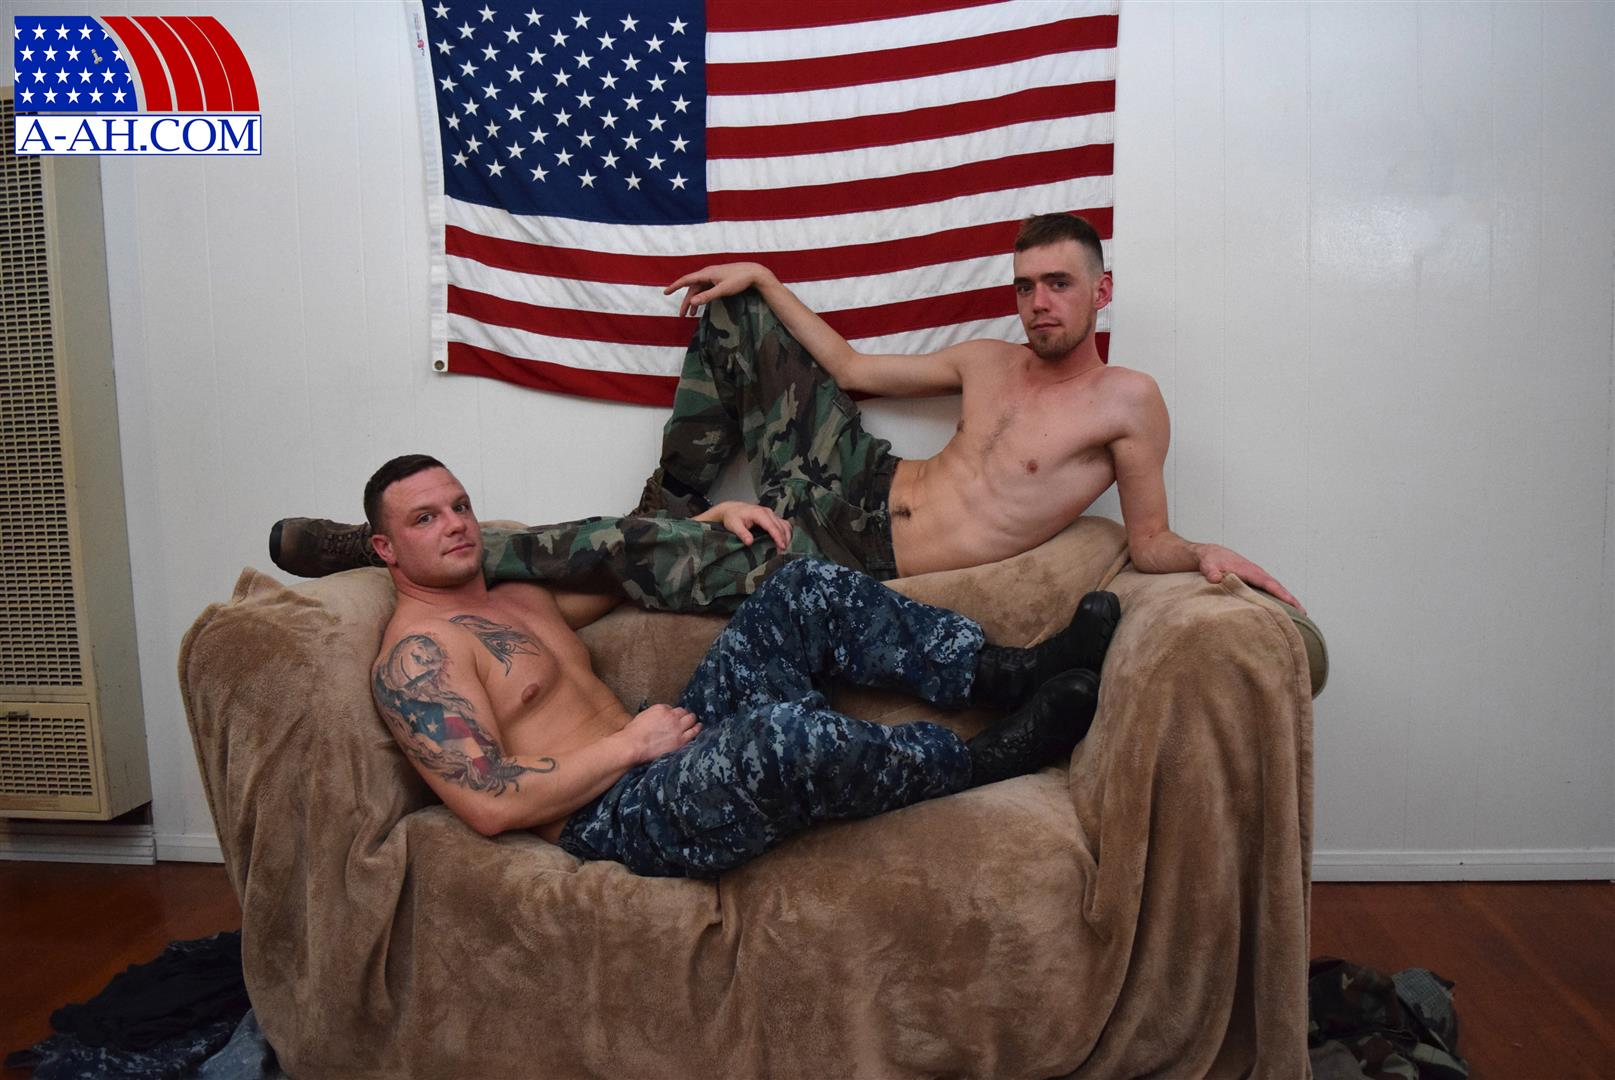 All American Heroes Naked Marine Gets Fucked Bareback Amateur Gay Porn 01 Army Corpsman Barebacks A Marine Corp Staff Sergeant